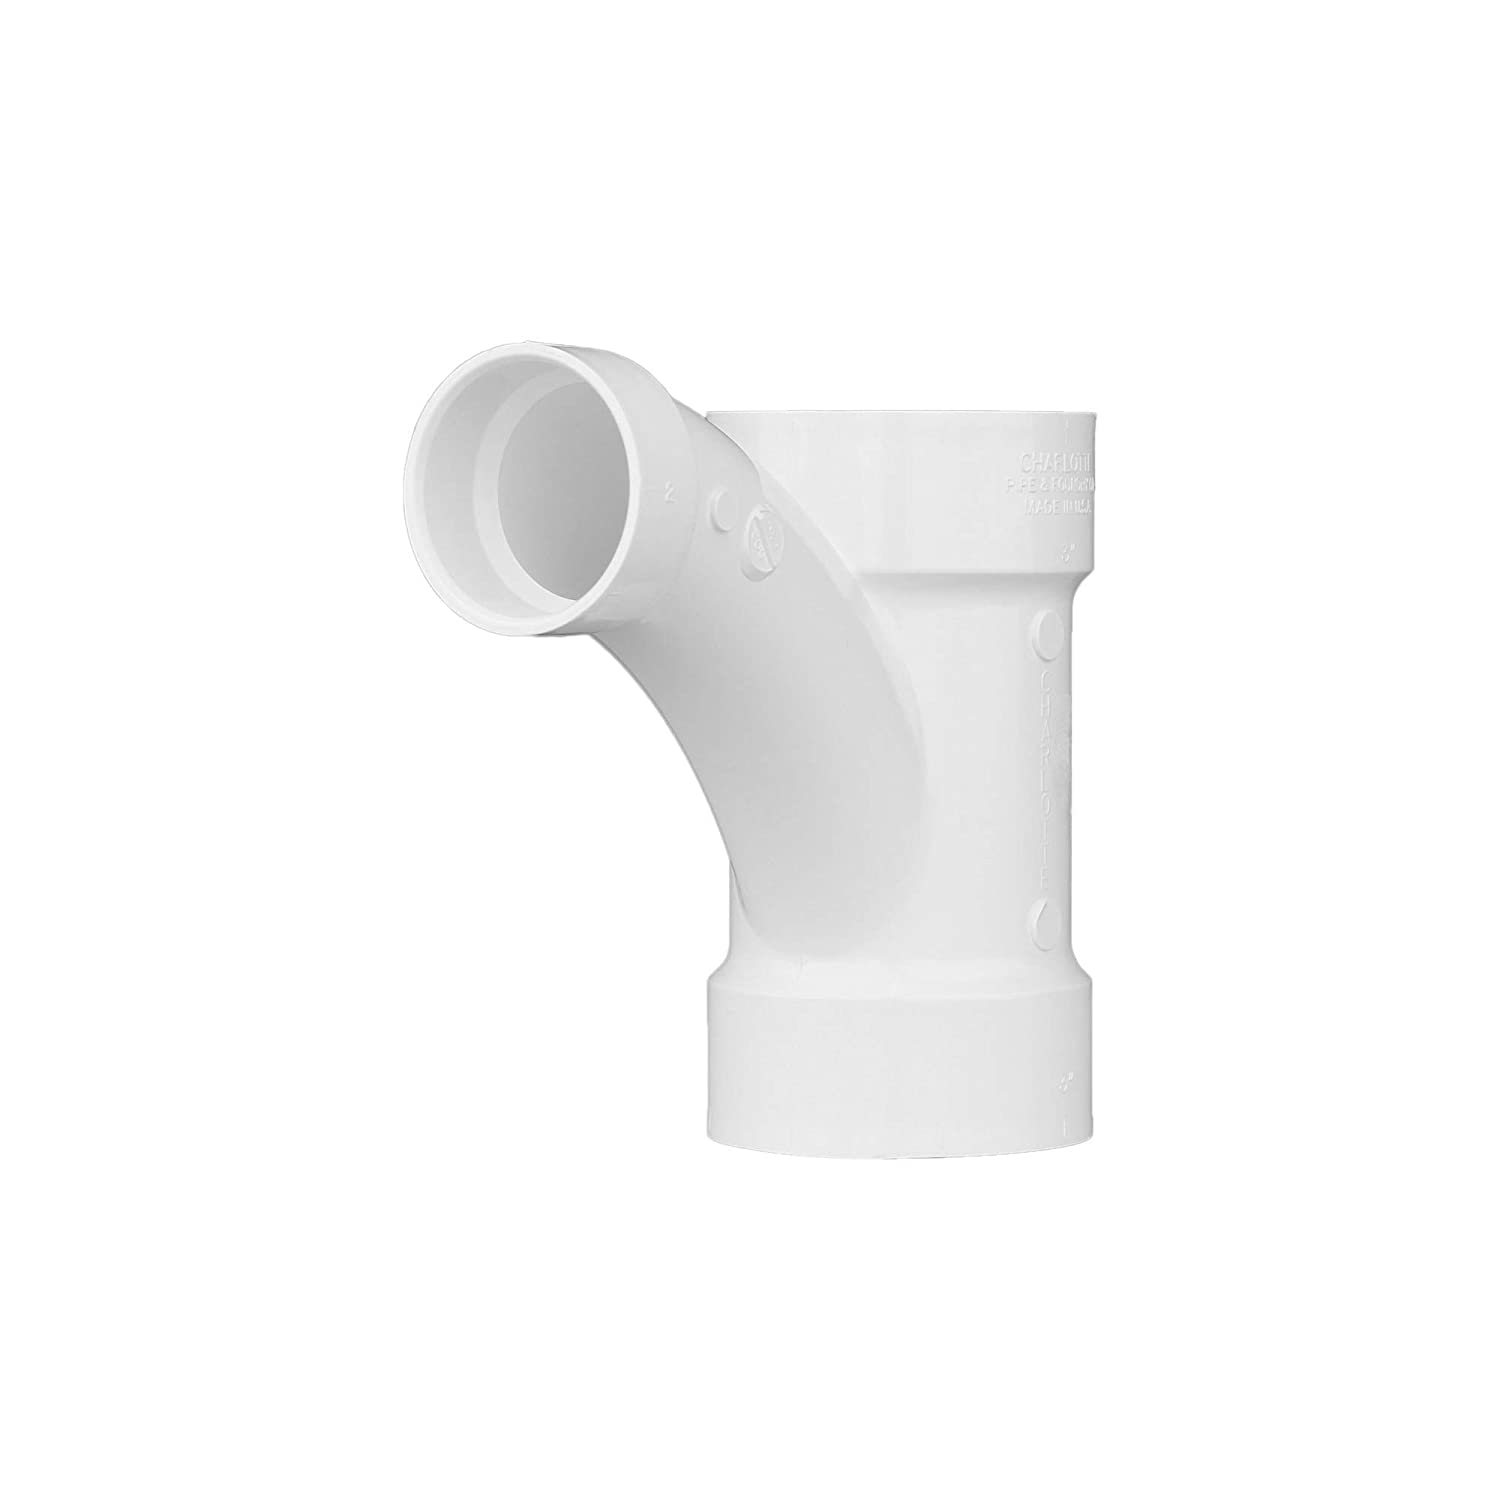 """Charlotte Pipe 3"""" X 3"""" X 2"""" Comb Wye Pipe Fitting - and 1/8"""" Bend 1"""" Piece Schedule 40 PVC DWV (Drain, Waste and Vent) Durable and Easy to Install for Home or Industrial Use (Single Unit)"""